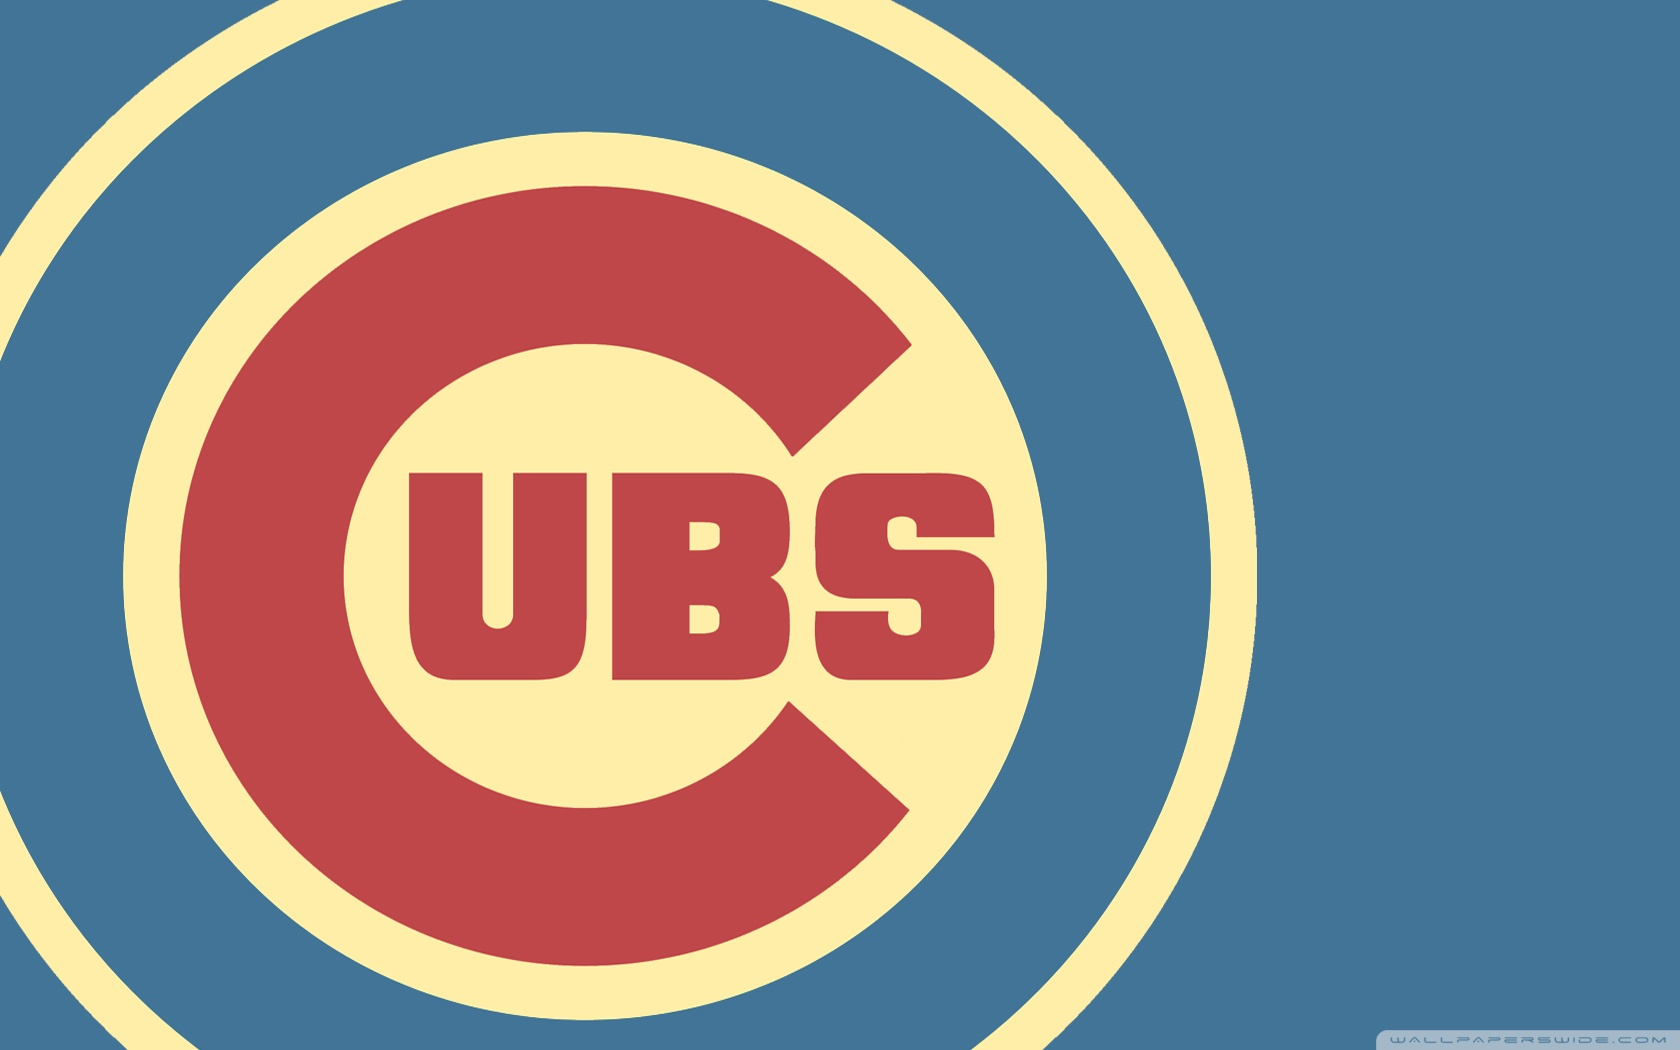 1680x1050 - Chicago Cubs Wallpapers 11